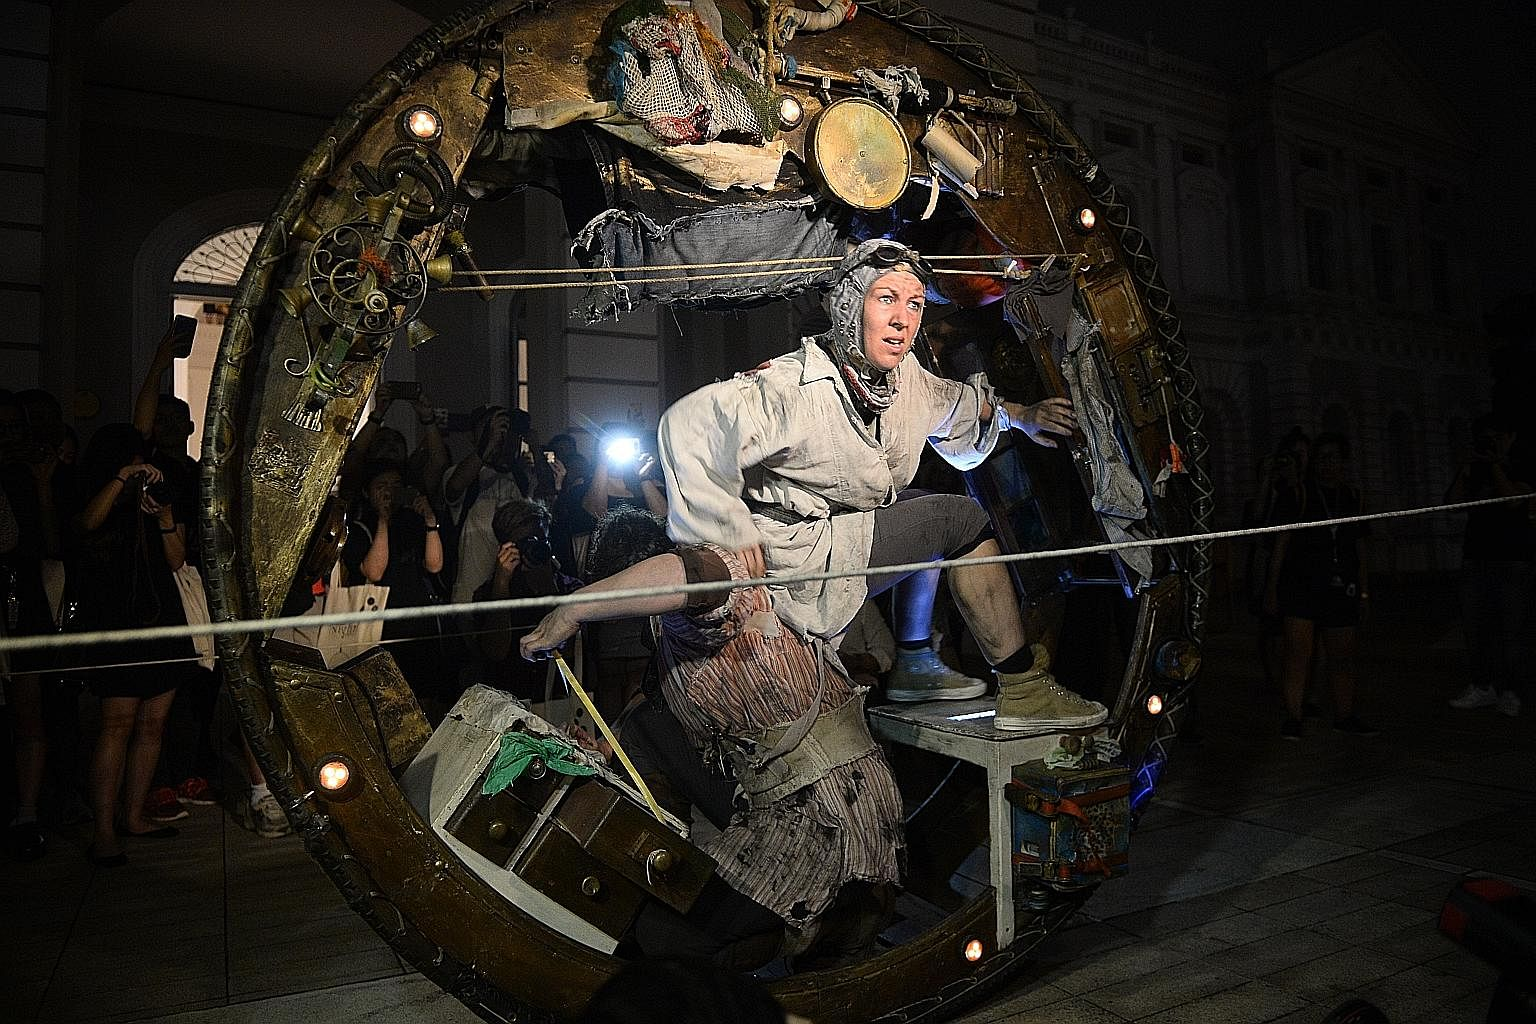 The Story Box is a playful work by American artist a dandypunk. The Wheel House by Acrojou features a man and a woman who live in a handbuilt, mobile circular house.